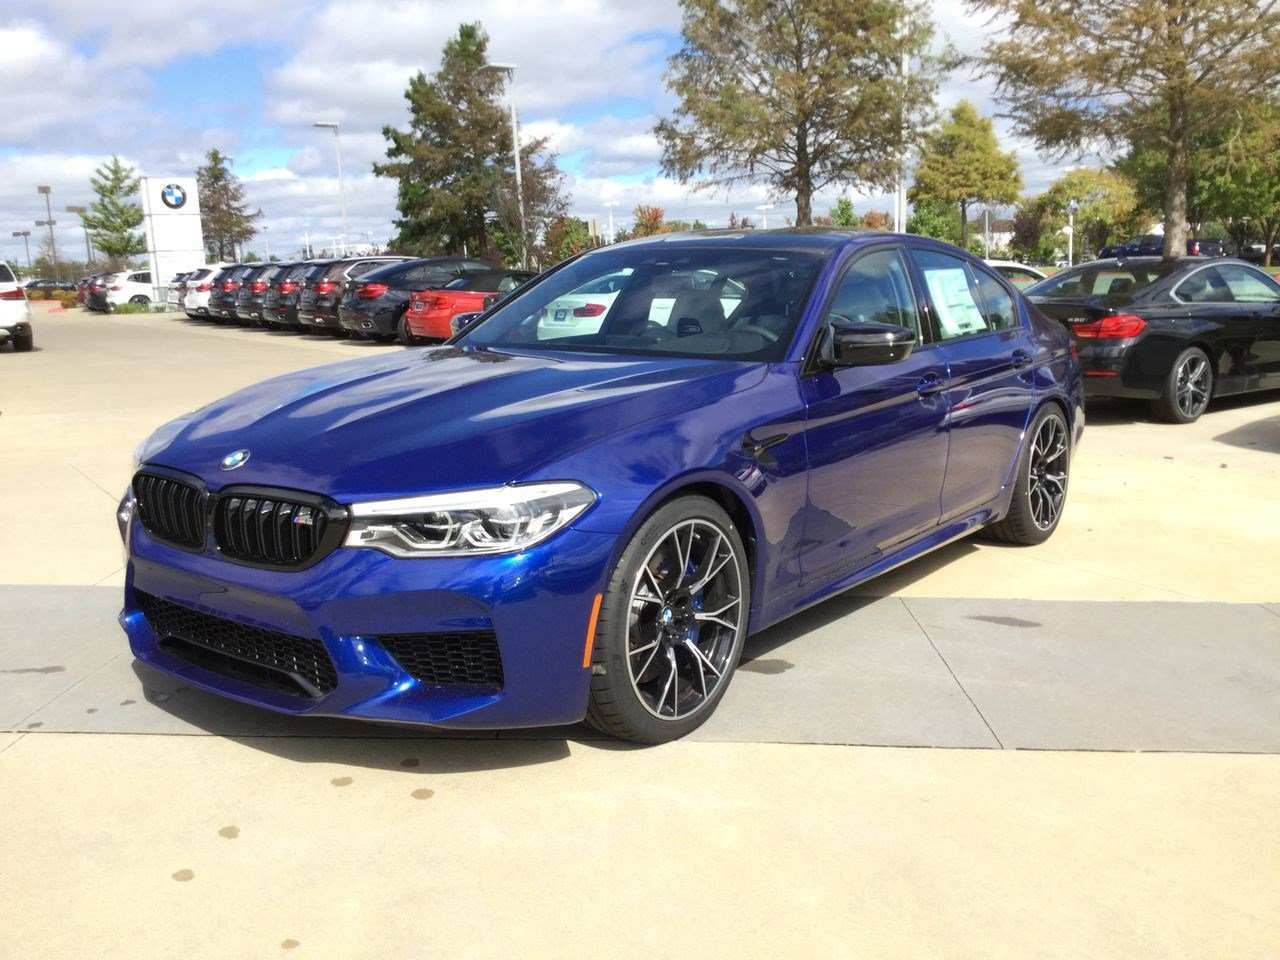 62 The Best 2019 BMW M5 Xdrive Awd Specs And Review